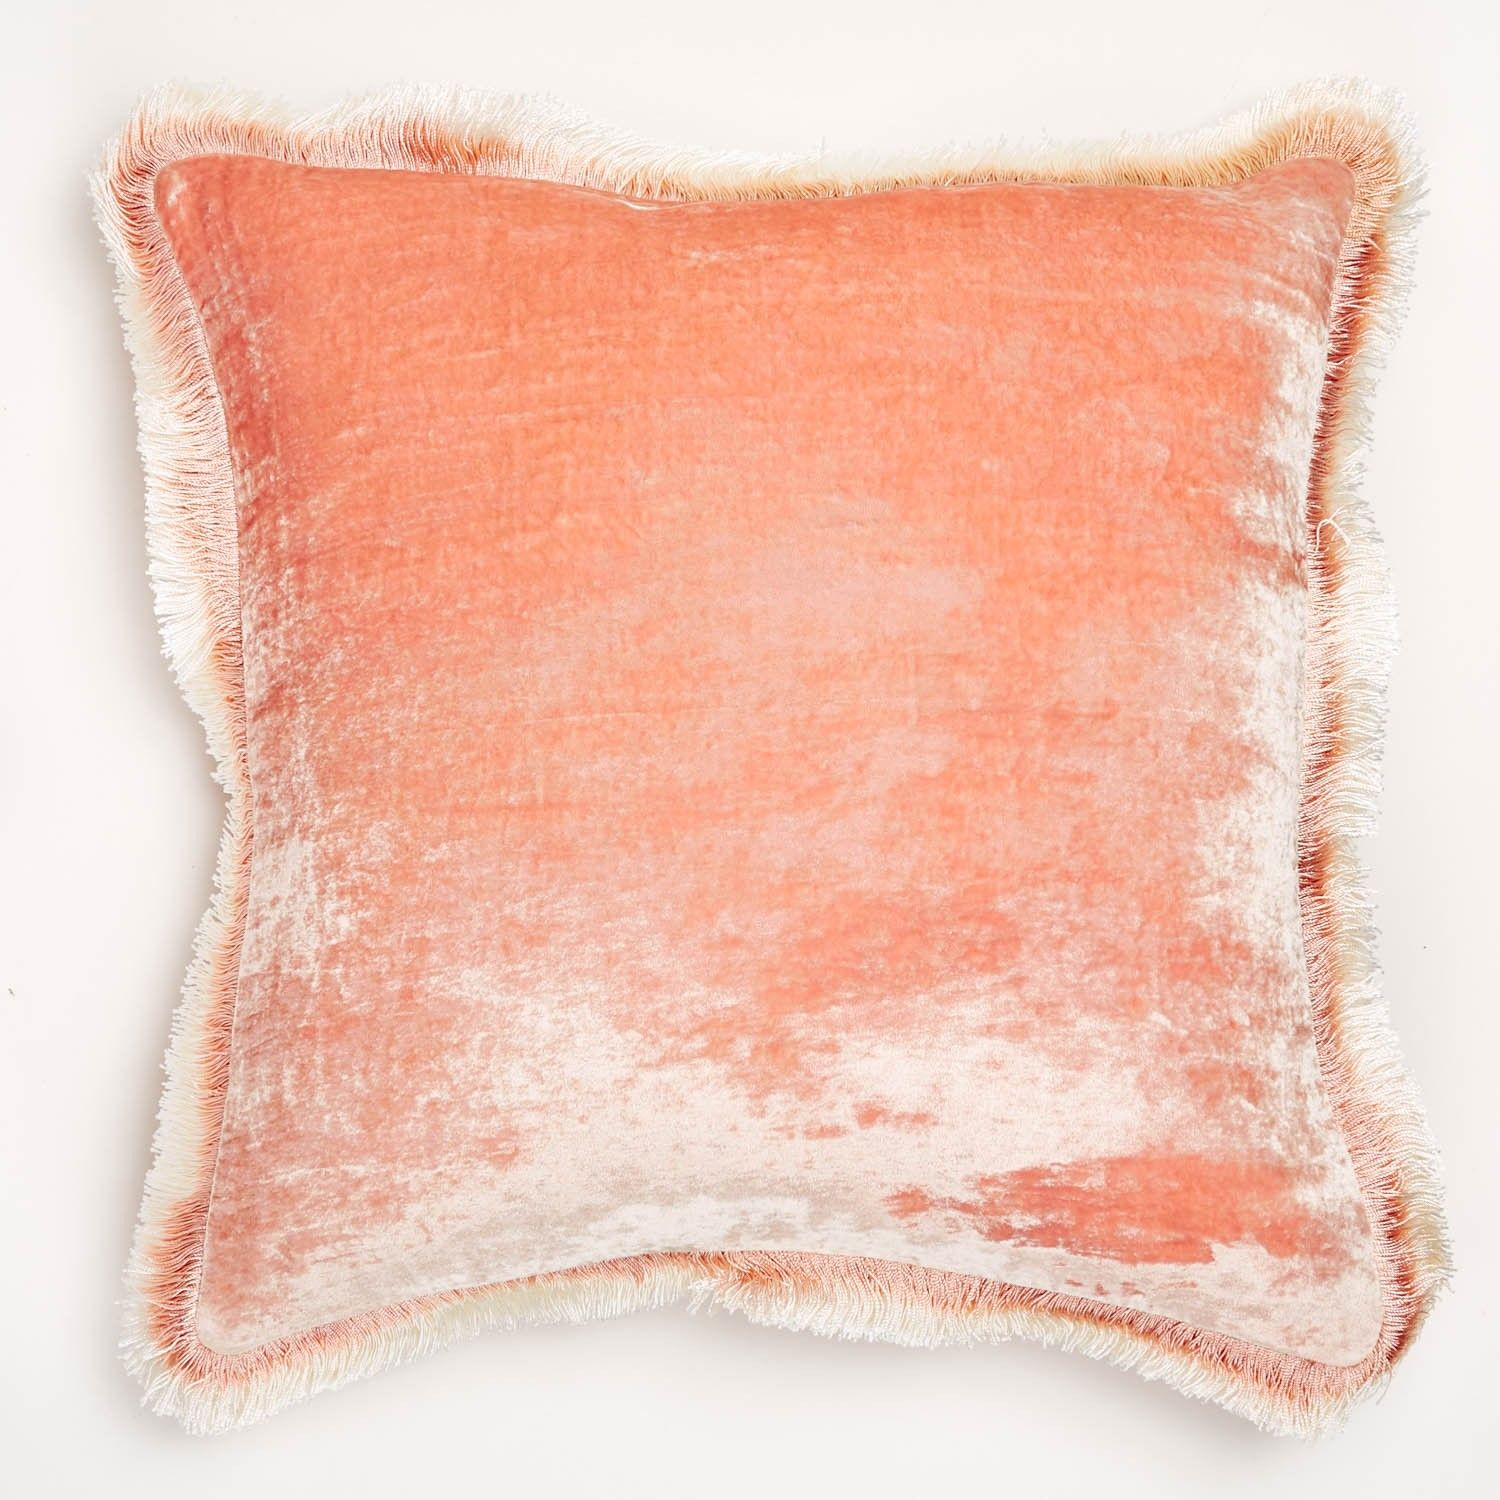 decorative decor ikea throw pillow pillows of awesome peach covers light picture pink